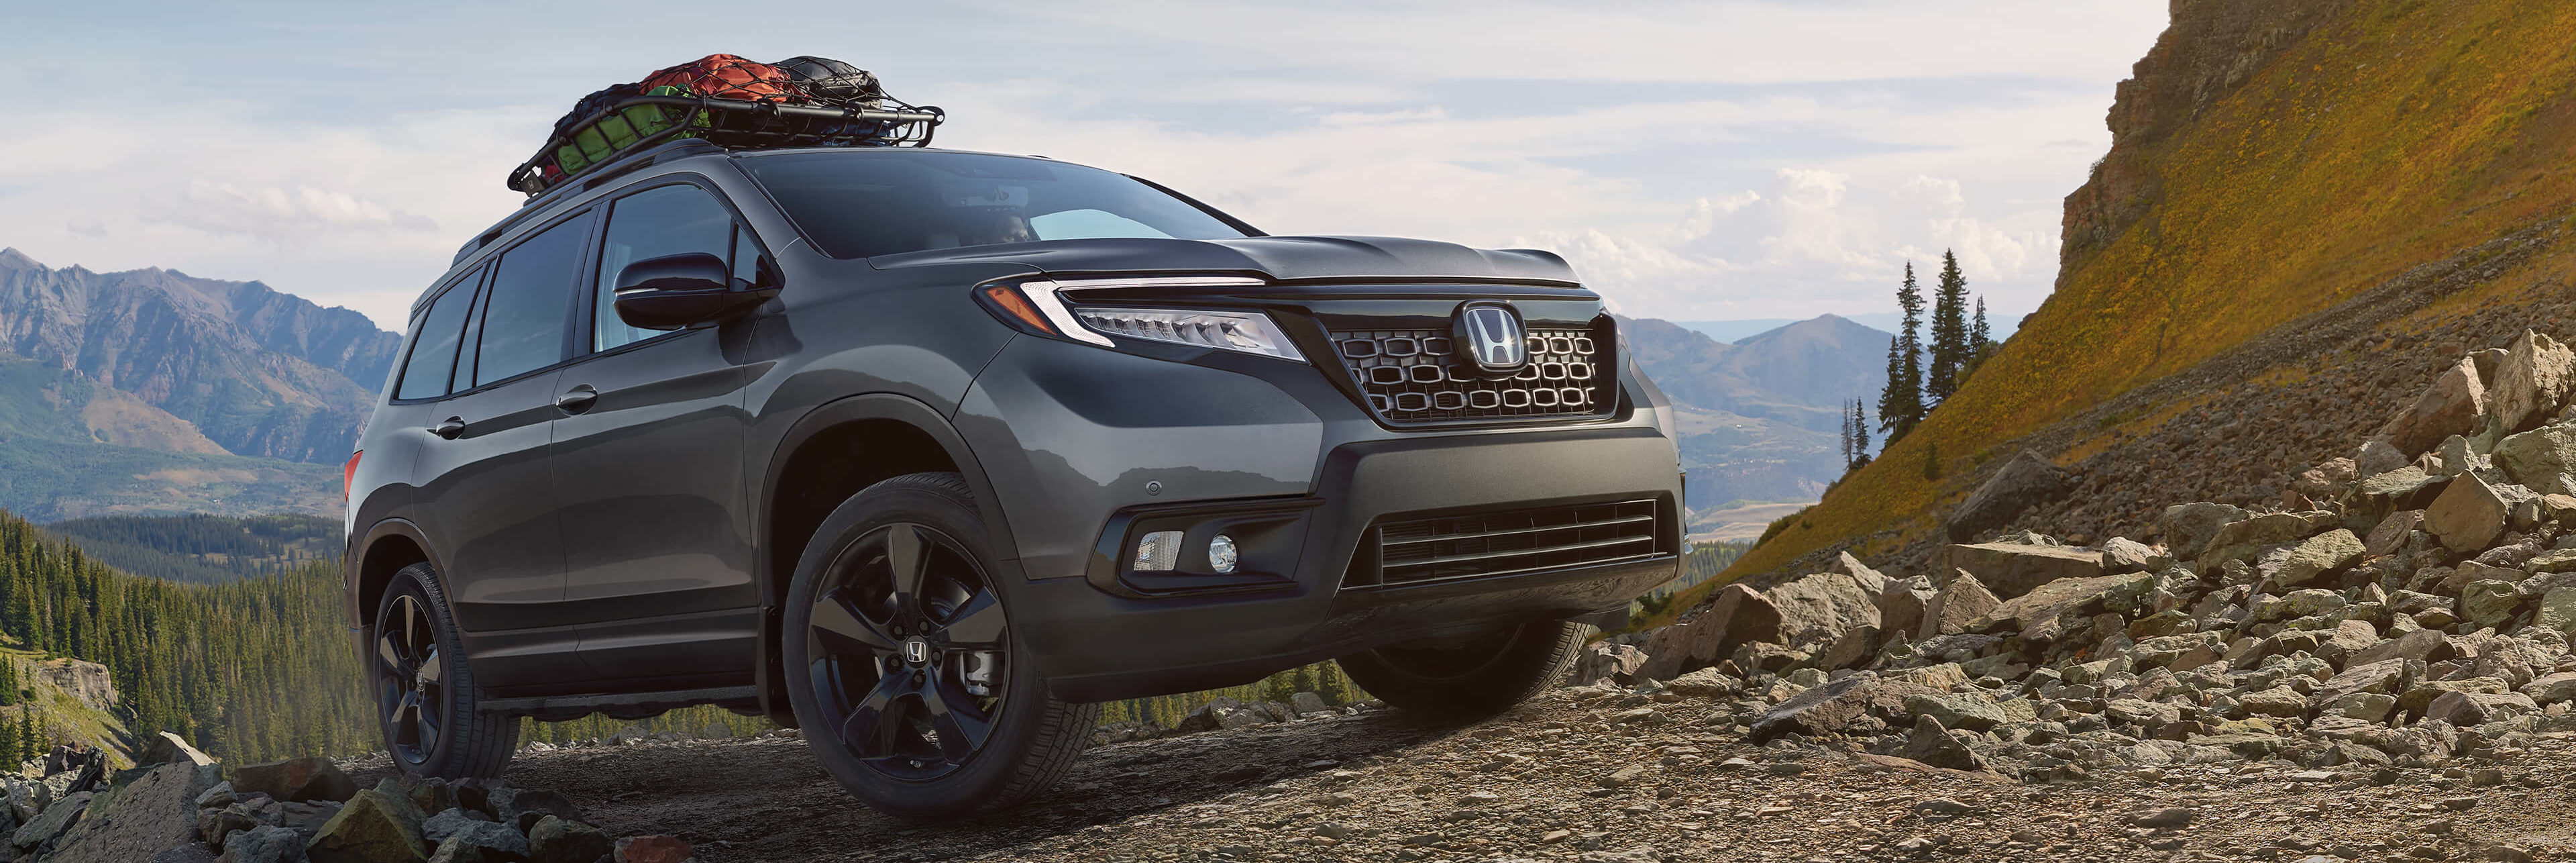 Honda Passport driving over a rocky hill with cargo on top